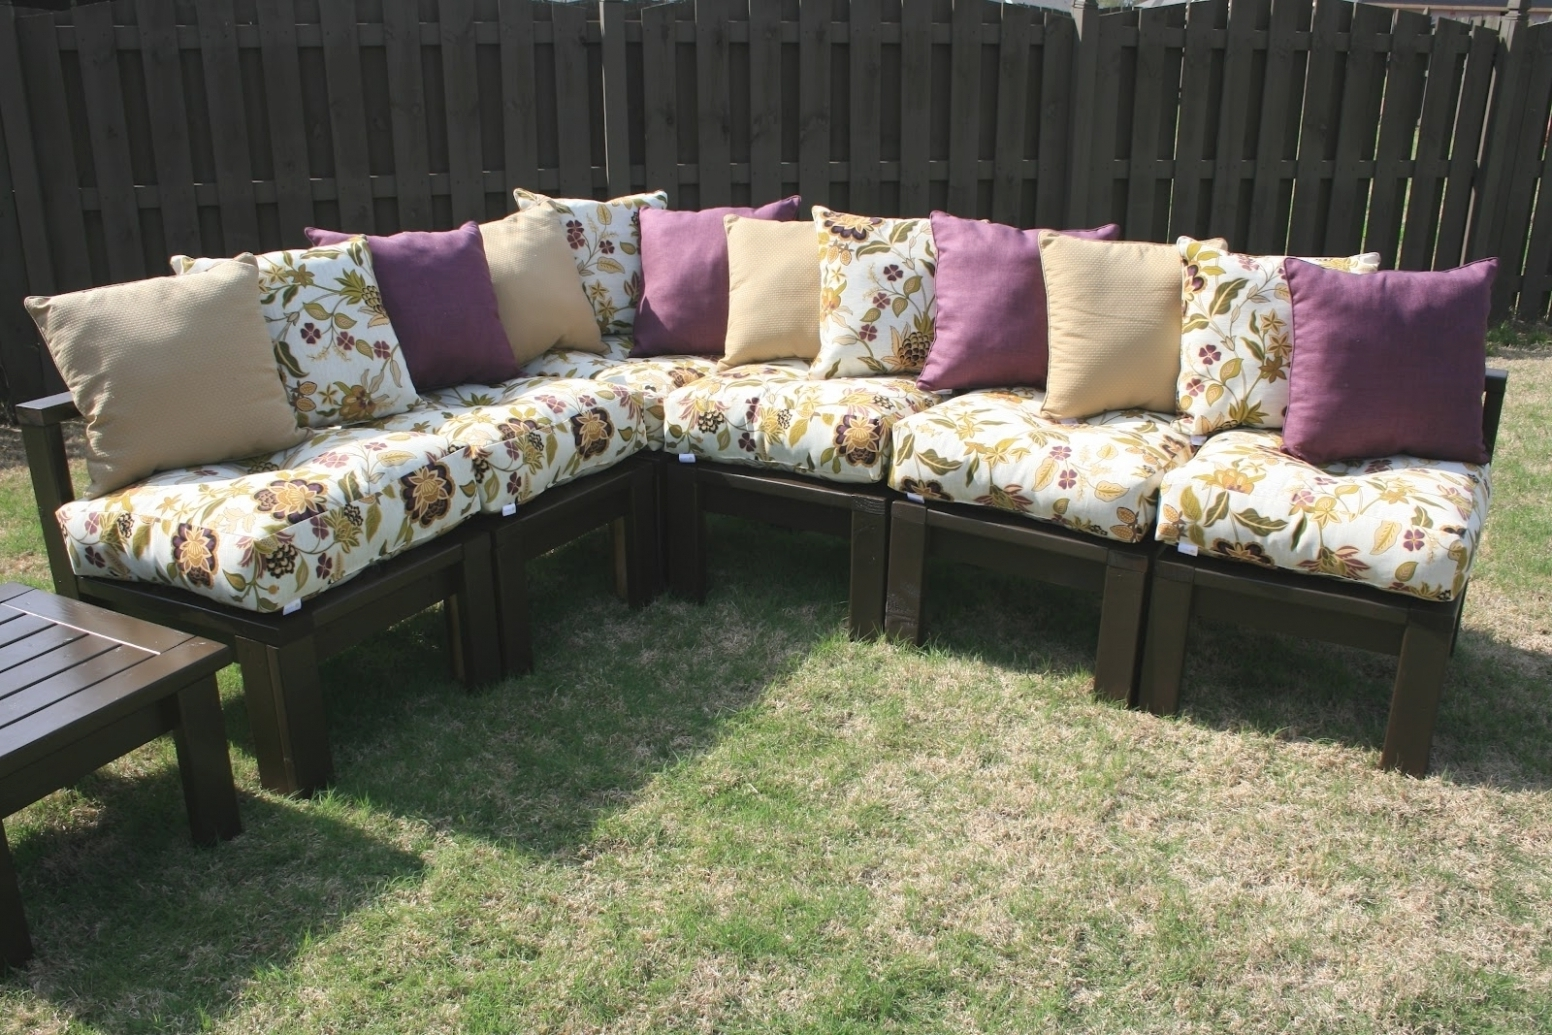 Target Sectional Sofas With Regard To Famous 25 Ideas Of Outdoor Sectional Sofa At Target (View 16 of 20)